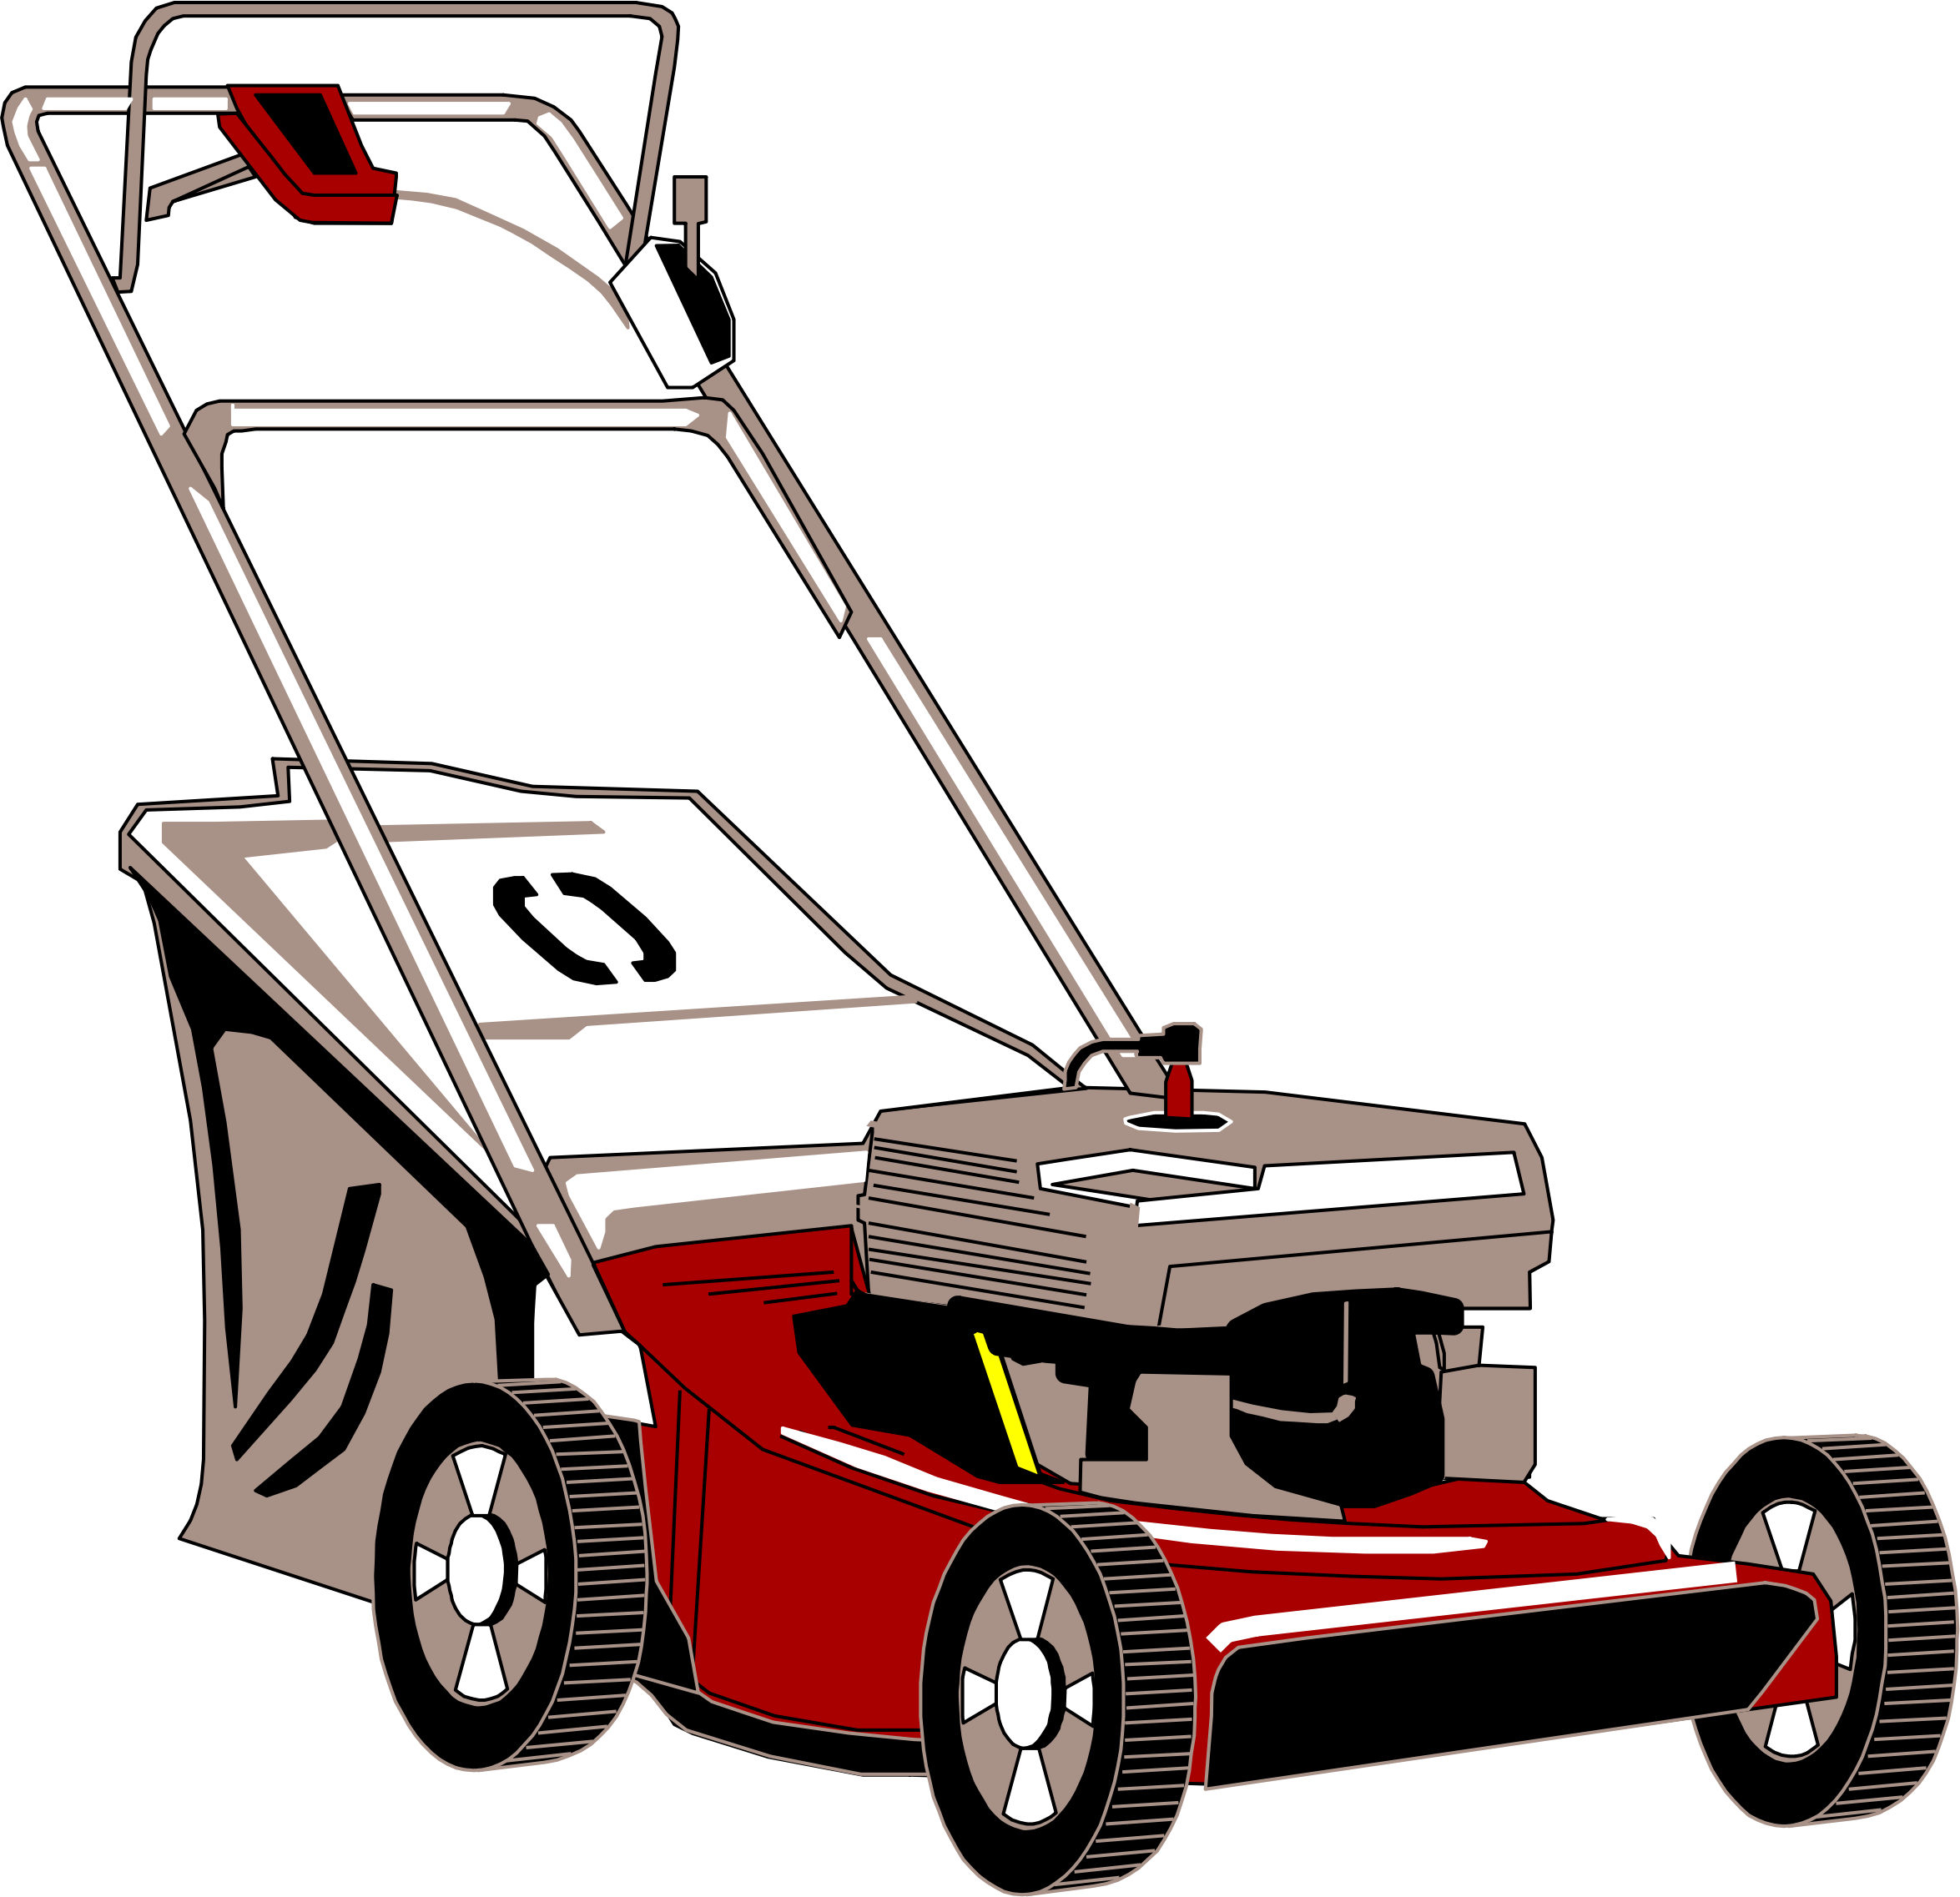 free download Lawnmower clipart. With bagger big image.